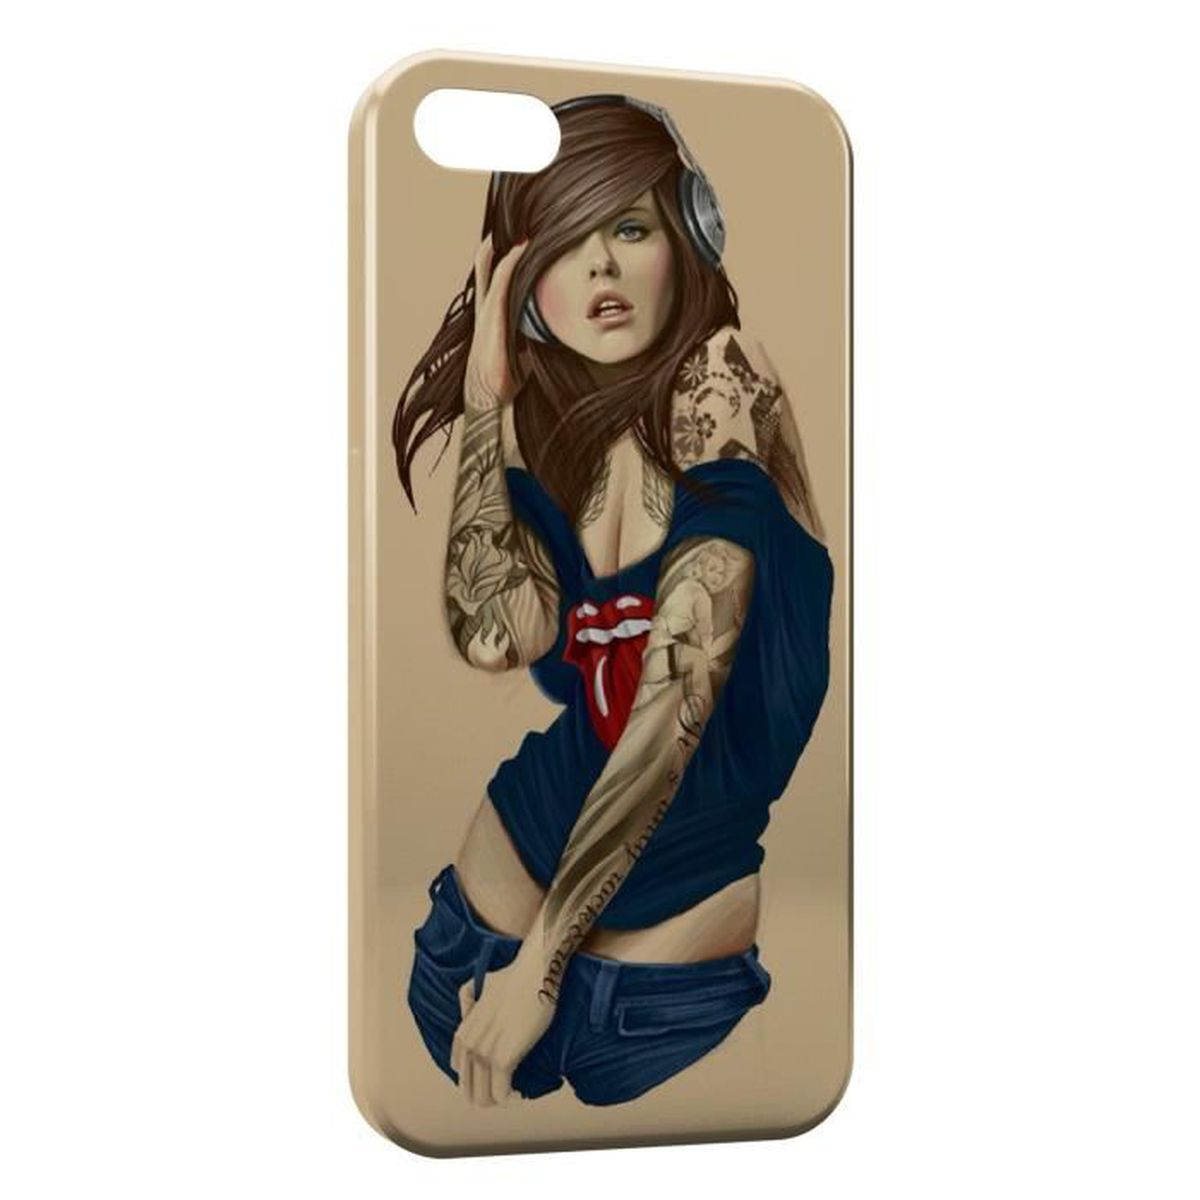 coque iphone 7 fille sexy